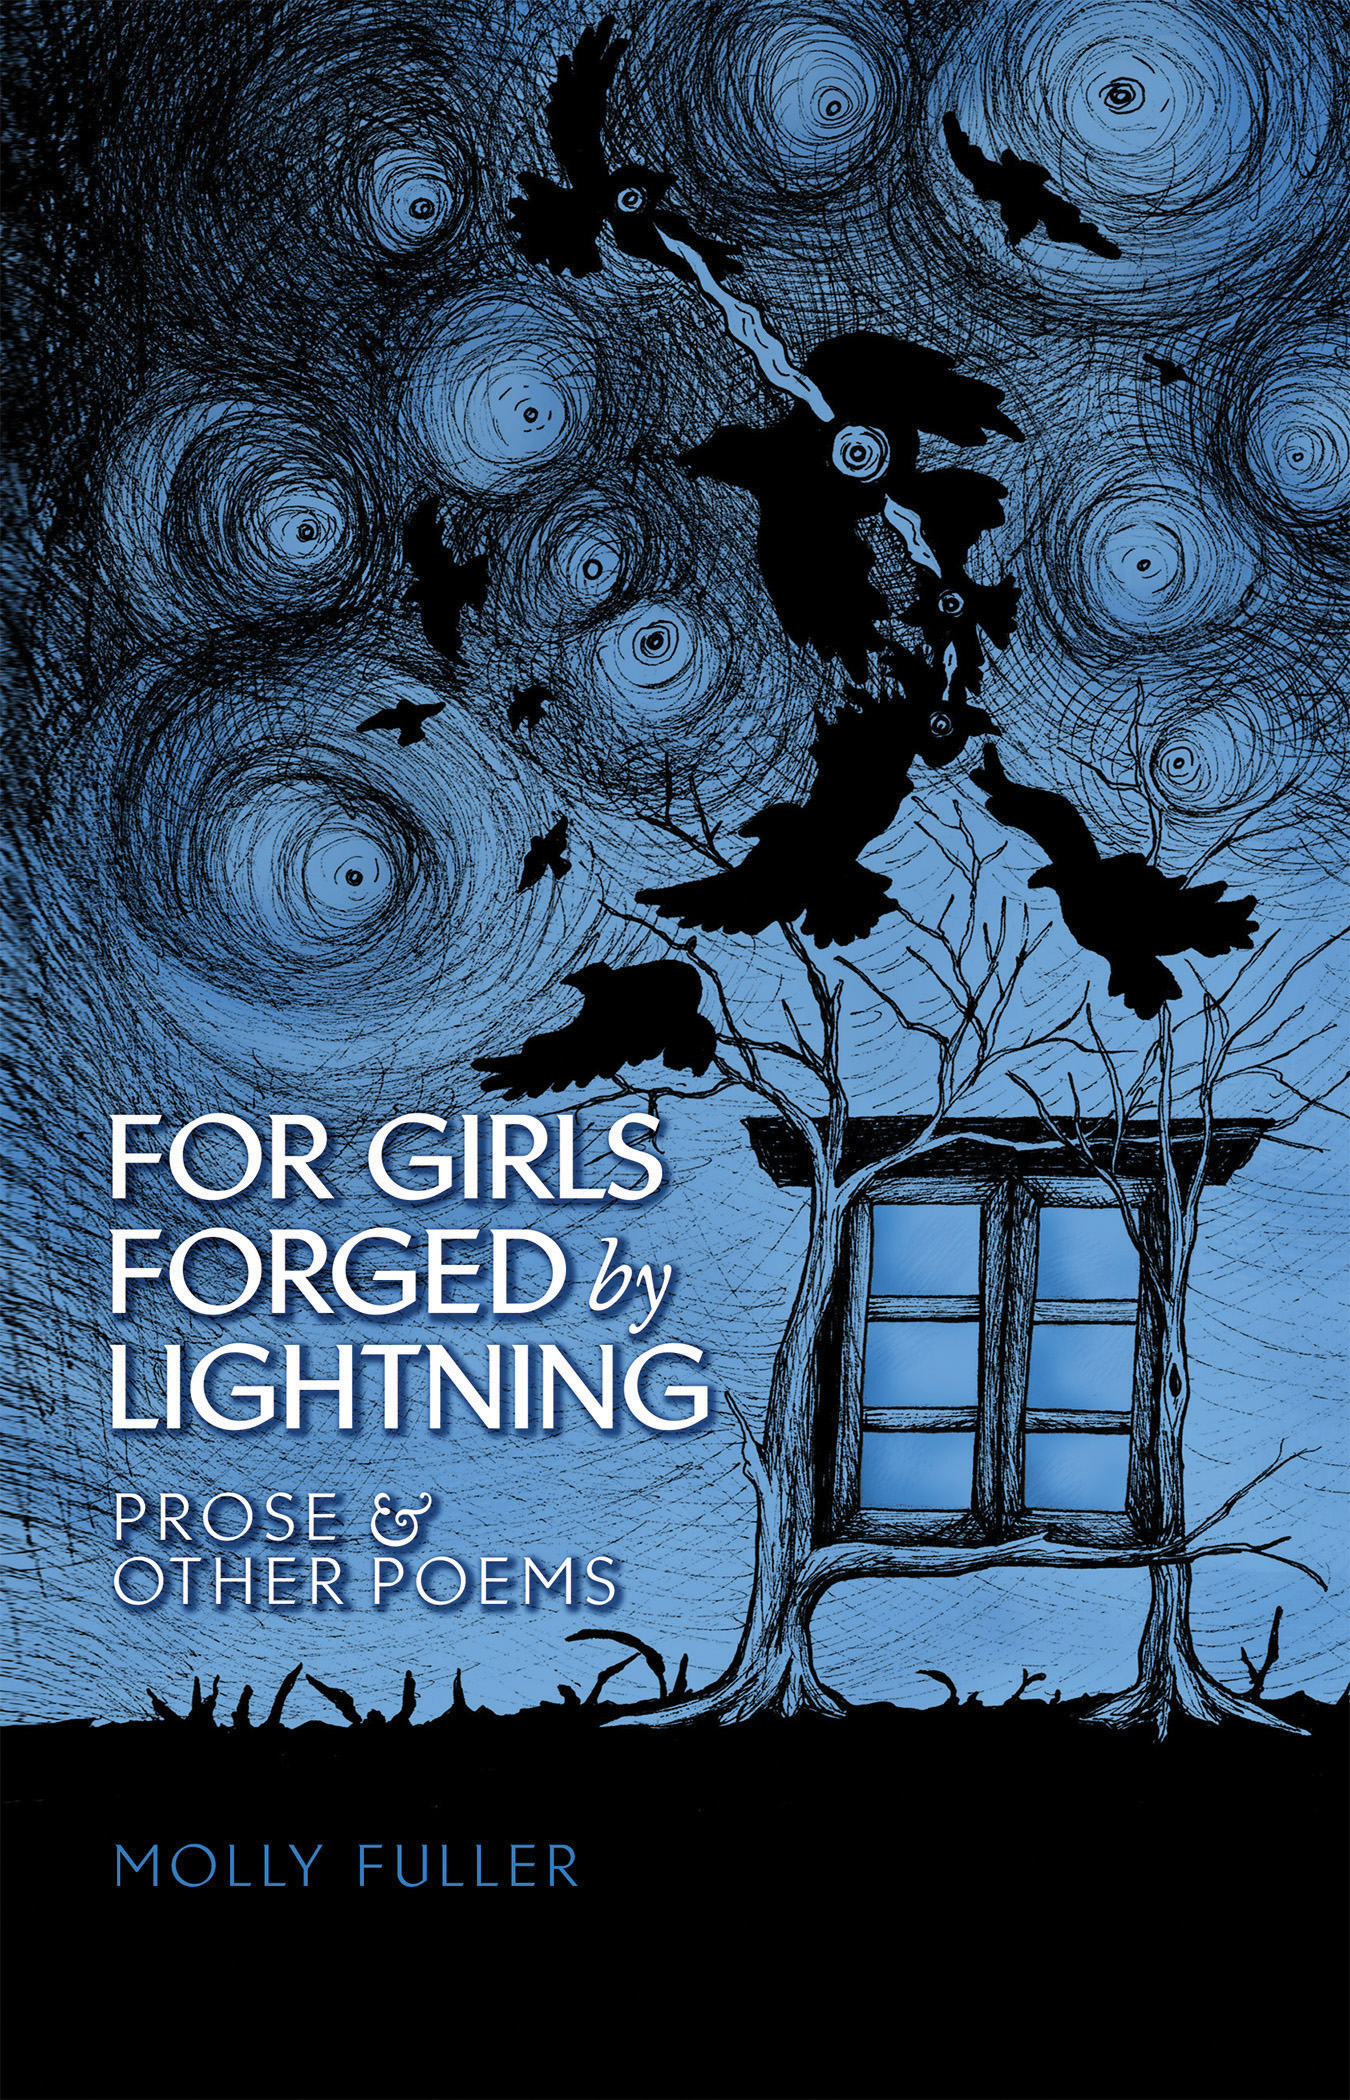 Cover of For Girls Forged by Lightning: Prose & Other Poems